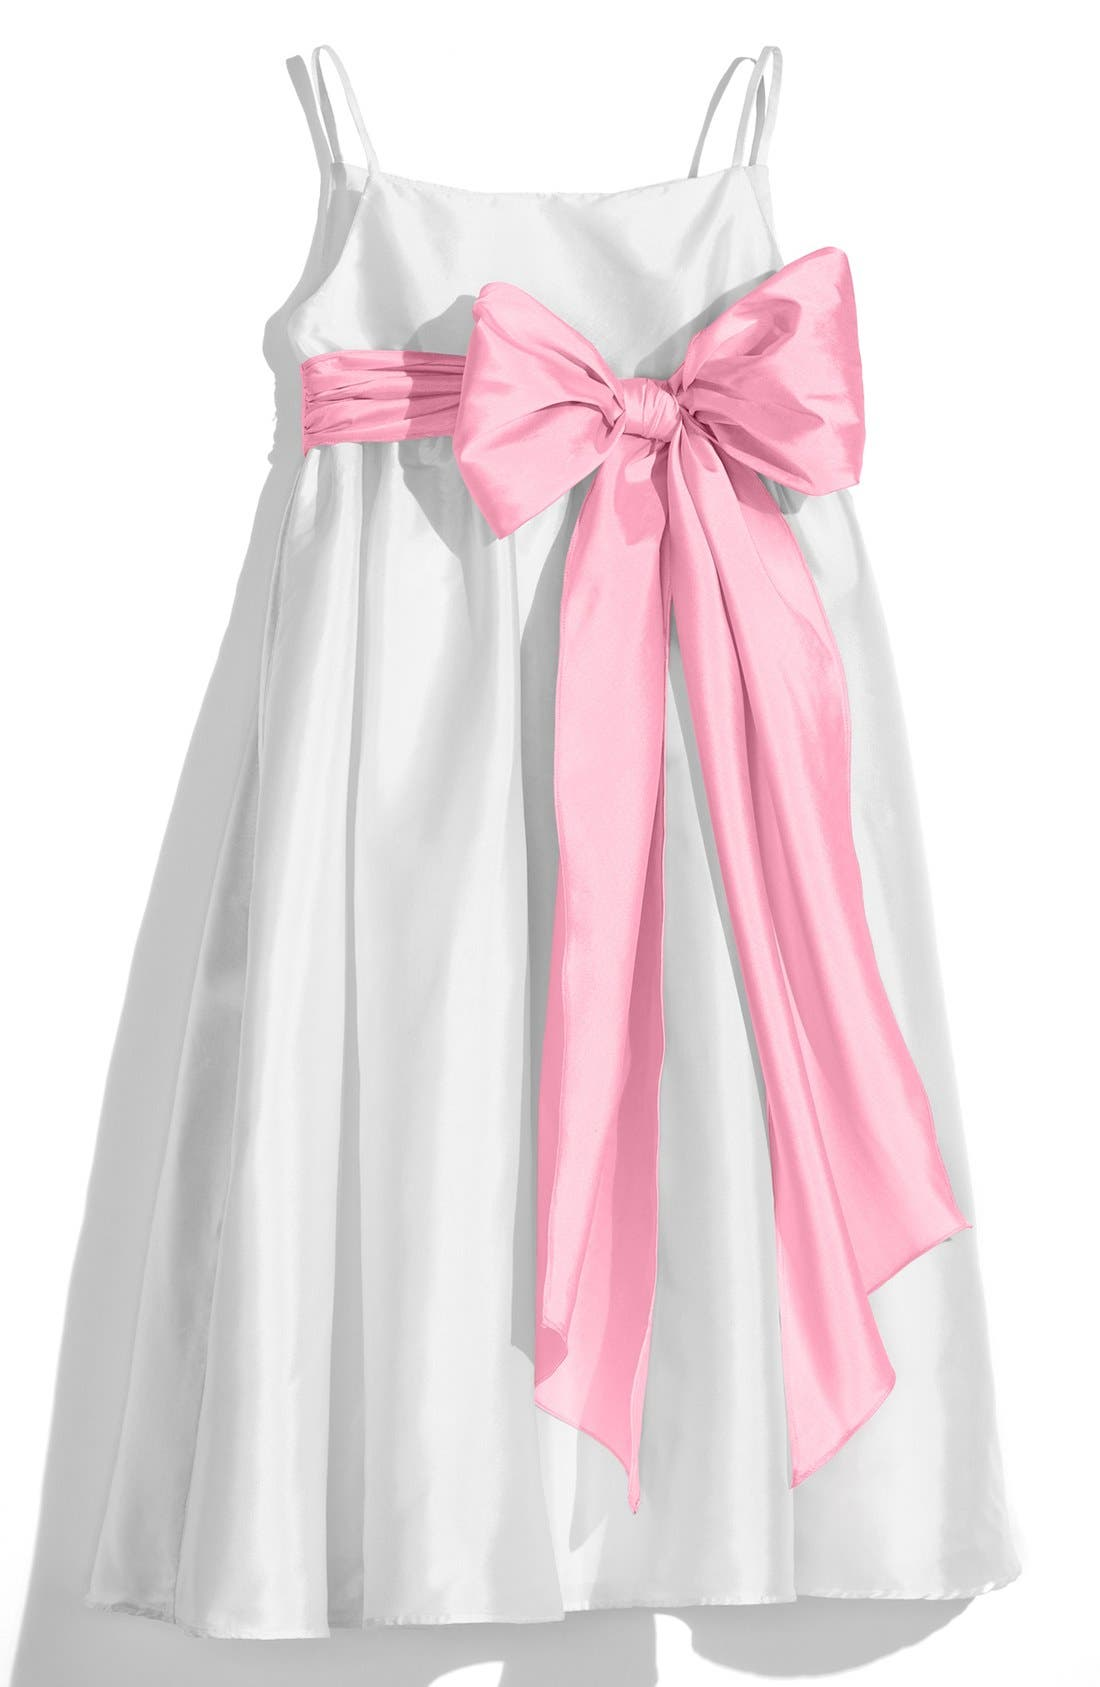 White Sleeveless Empire Waist Taffeta Dress,                         Main,                         color, White/ Cotton Candy